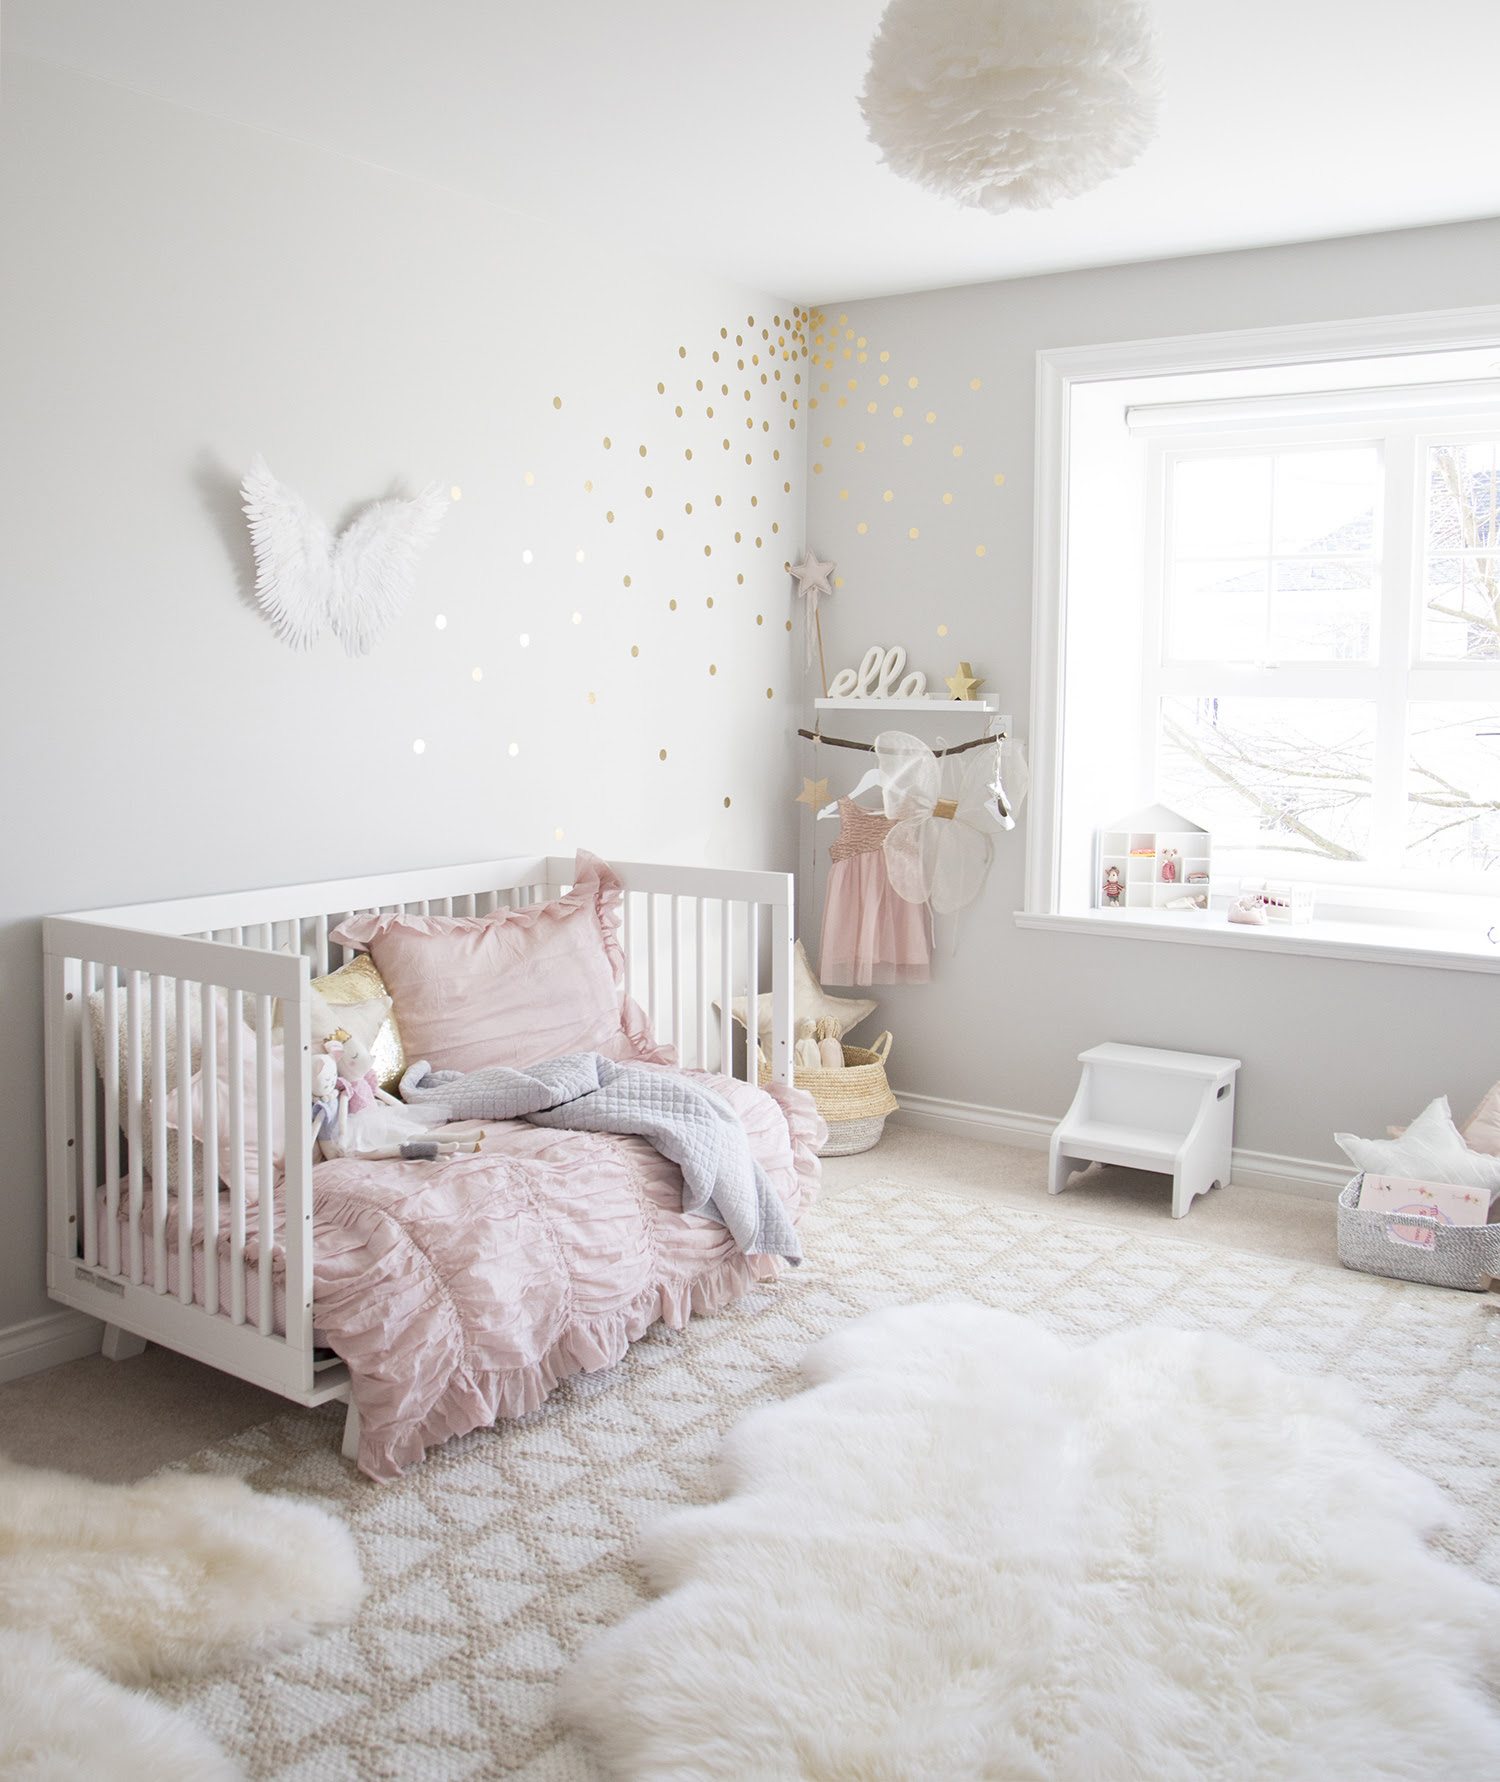 ELLA'S SOFT PINK AND GOLD TODDLER ROOM — WINTER DAISY ...